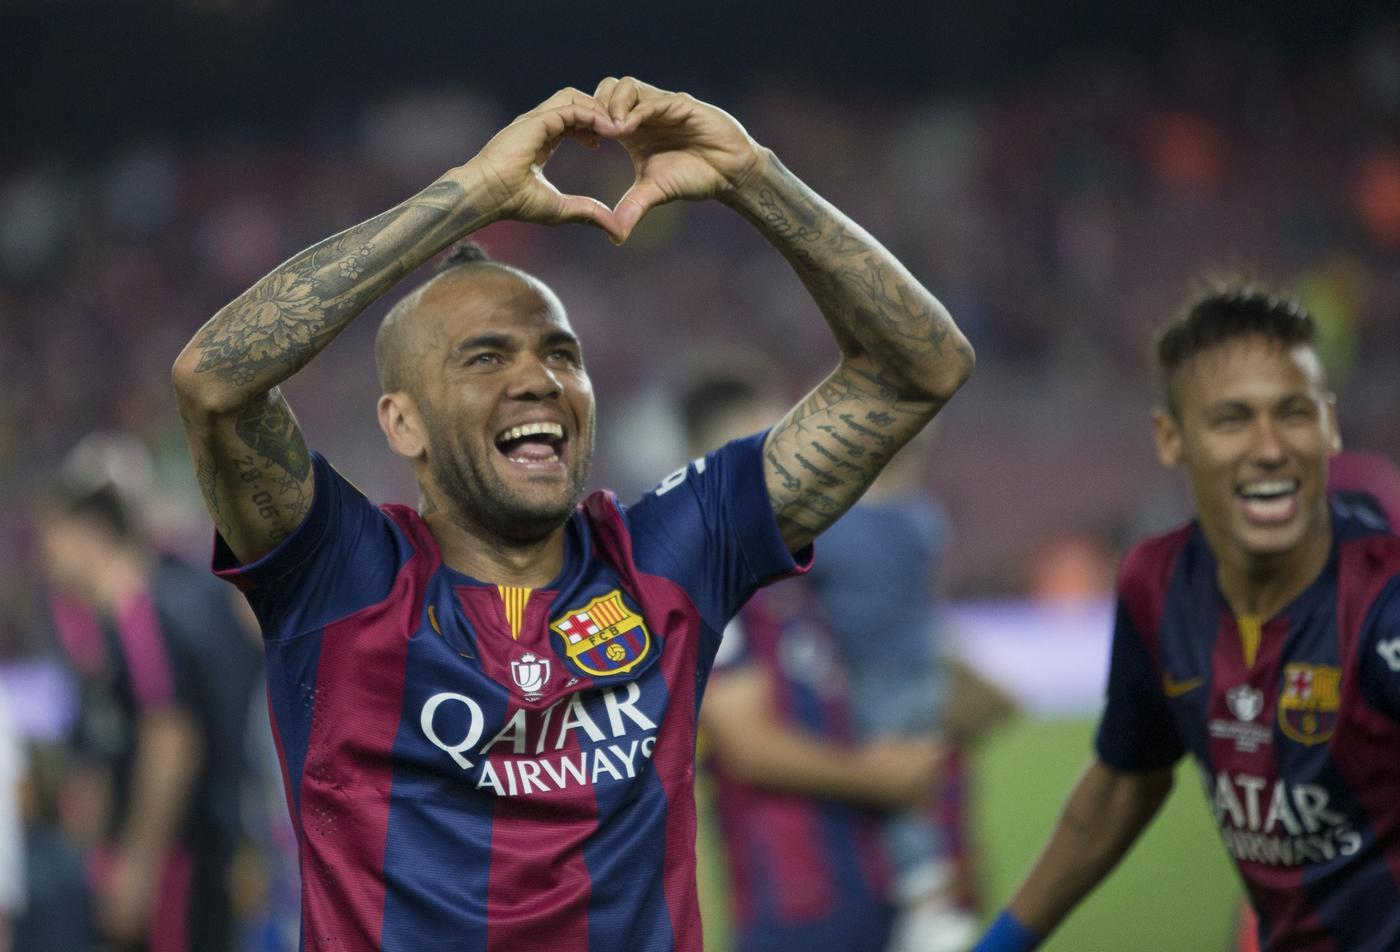 Manchester United transfer target Dani Alves will not join Paris Saint-Germain, says manager Laurent Blanc